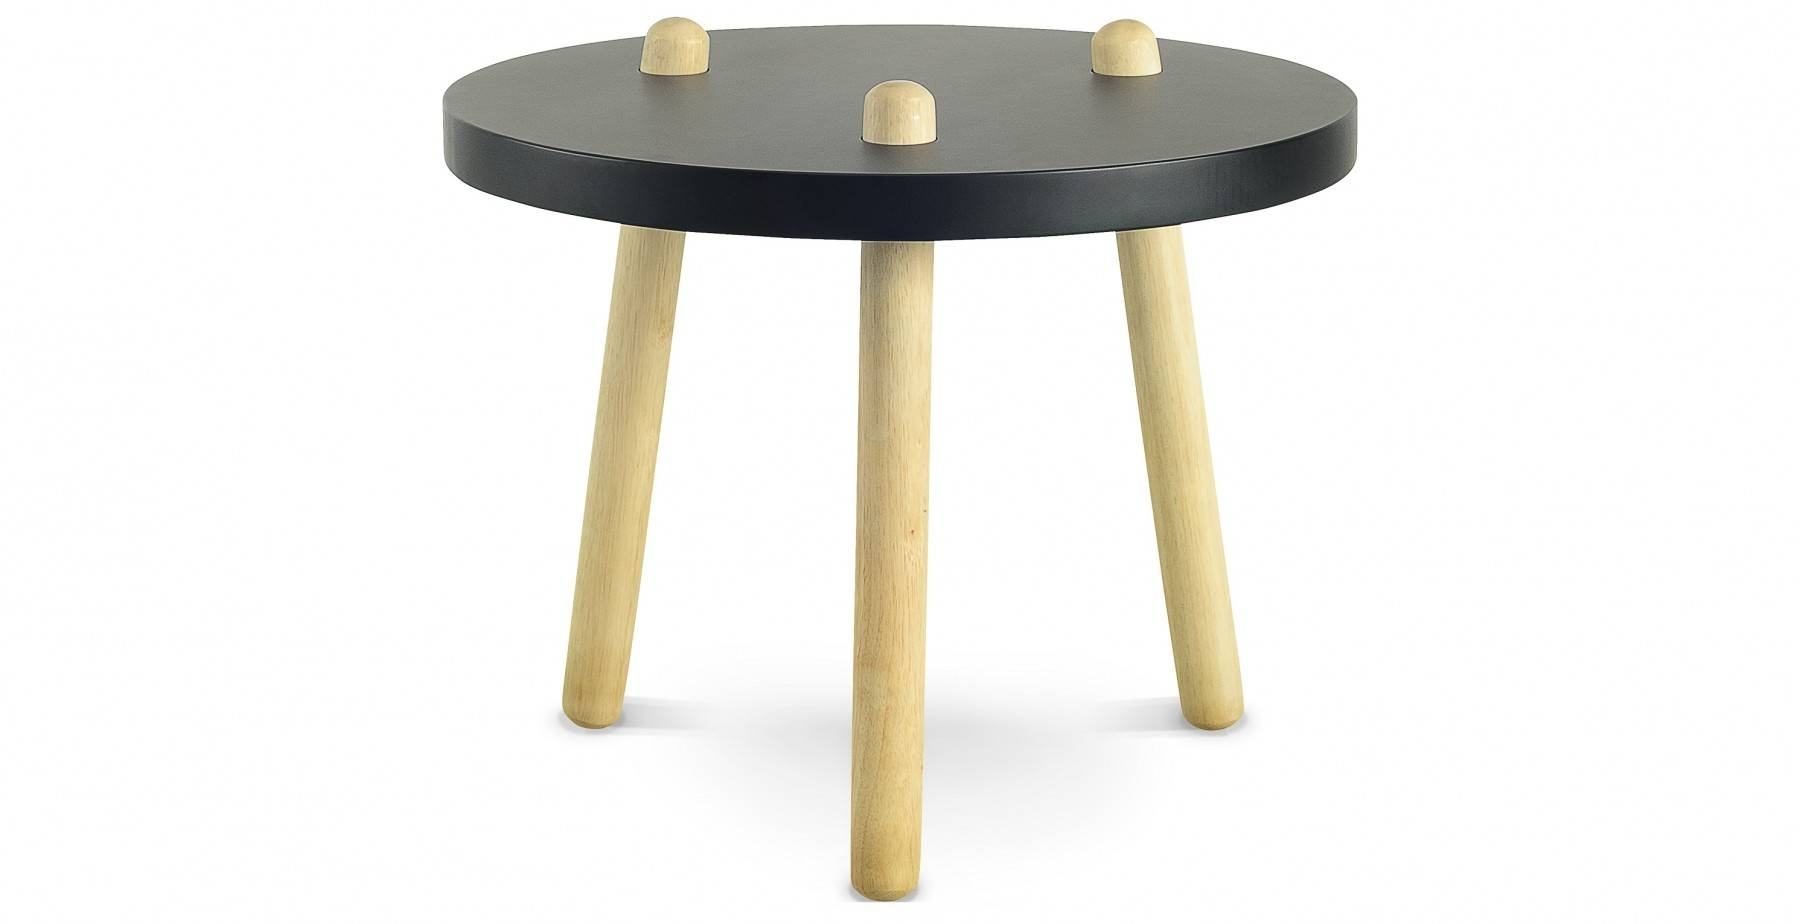 Kimi High Coffee Table, Black Fern & Grey inside High Coffee Tables (Image 11 of 15)